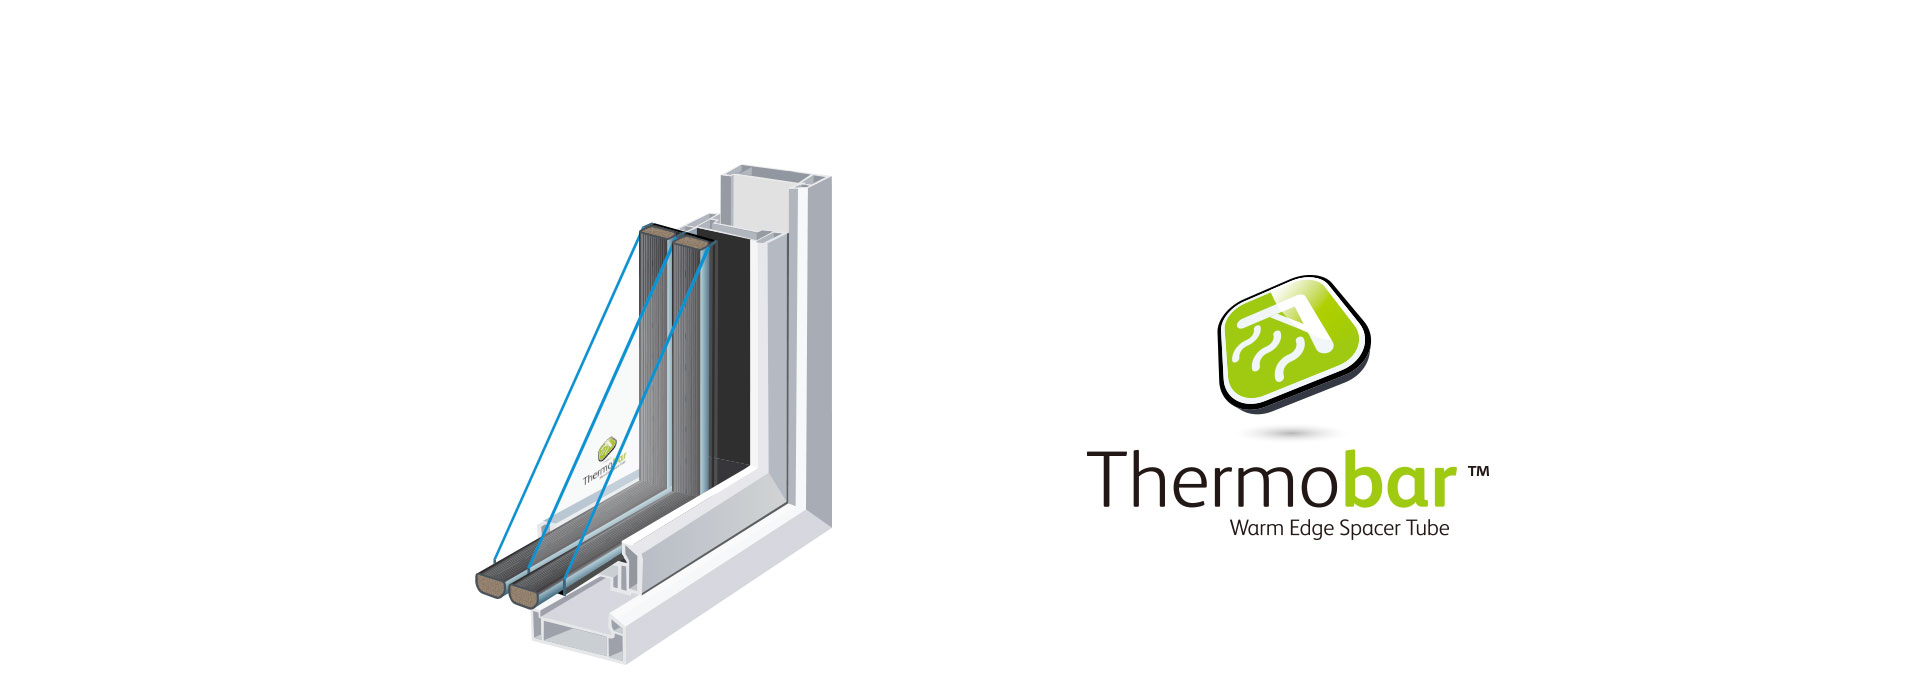 Thermobar Warm Edge